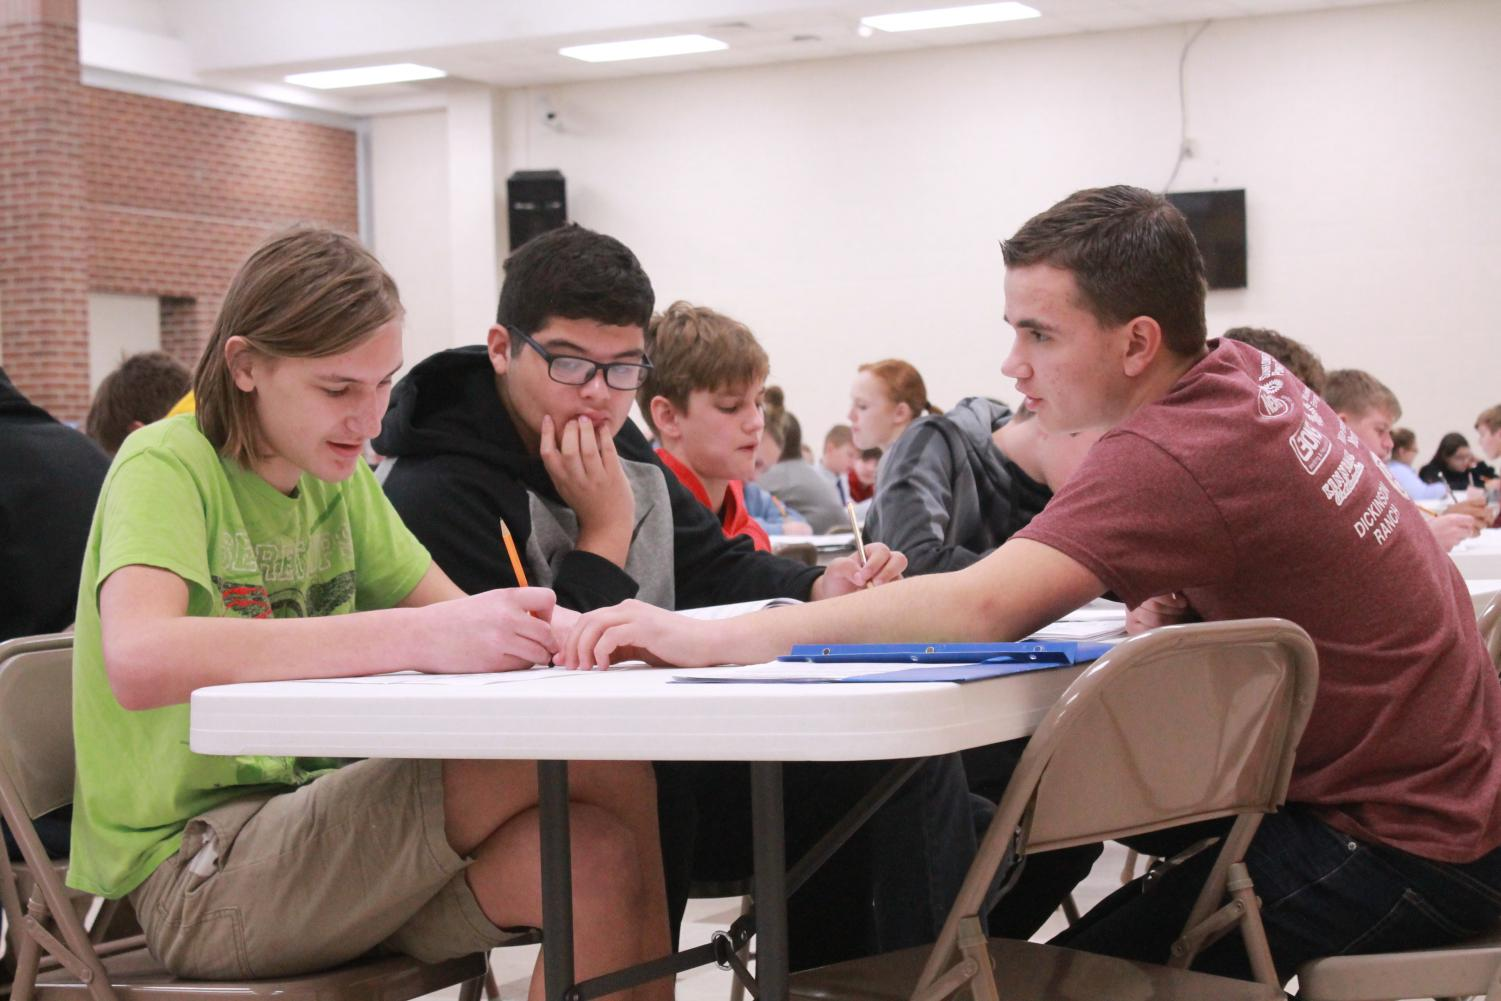 Leadership team member Josh Norris helps students enroll in classes. On Feb. 26, 8th grade parents had a meeting in the lecture hall.